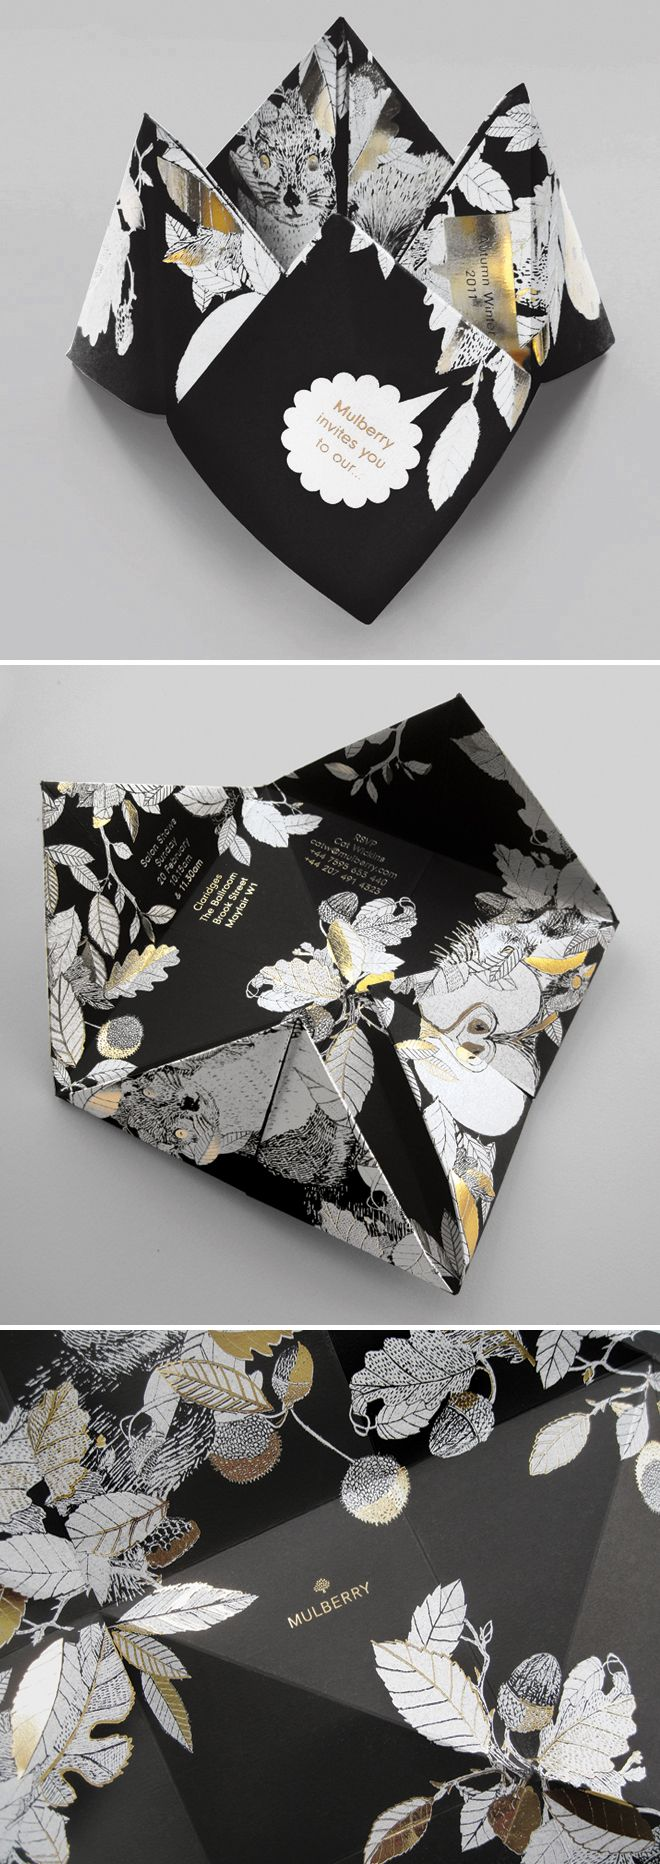 251 best paper goods images on pinterest unique wedding invitation ideas from your favorite fashion brands monicamarmolfo Gallery